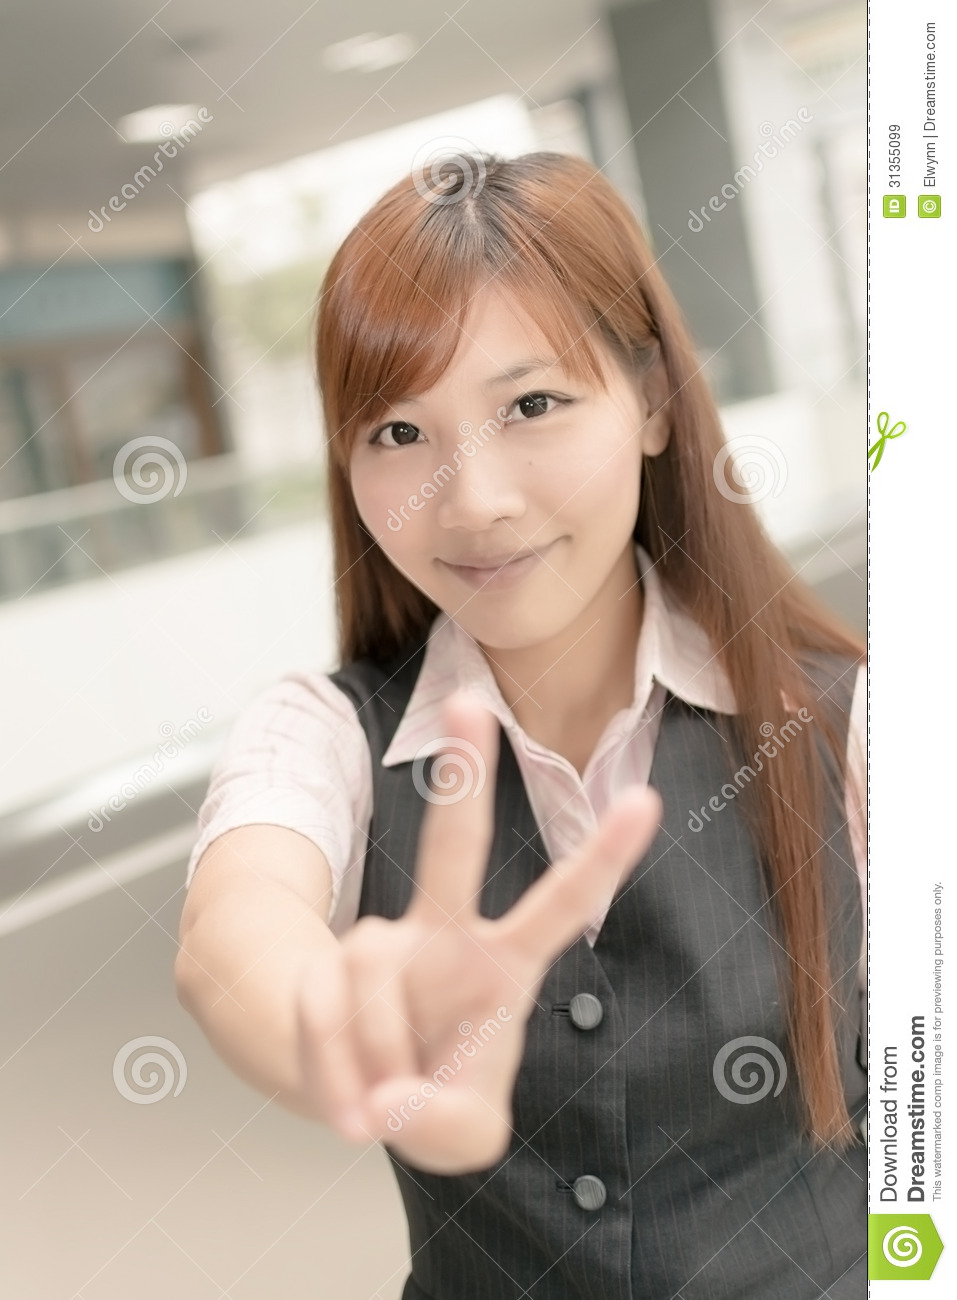 Peace Sign Stock Image Image Of Outside, Communicate -5402